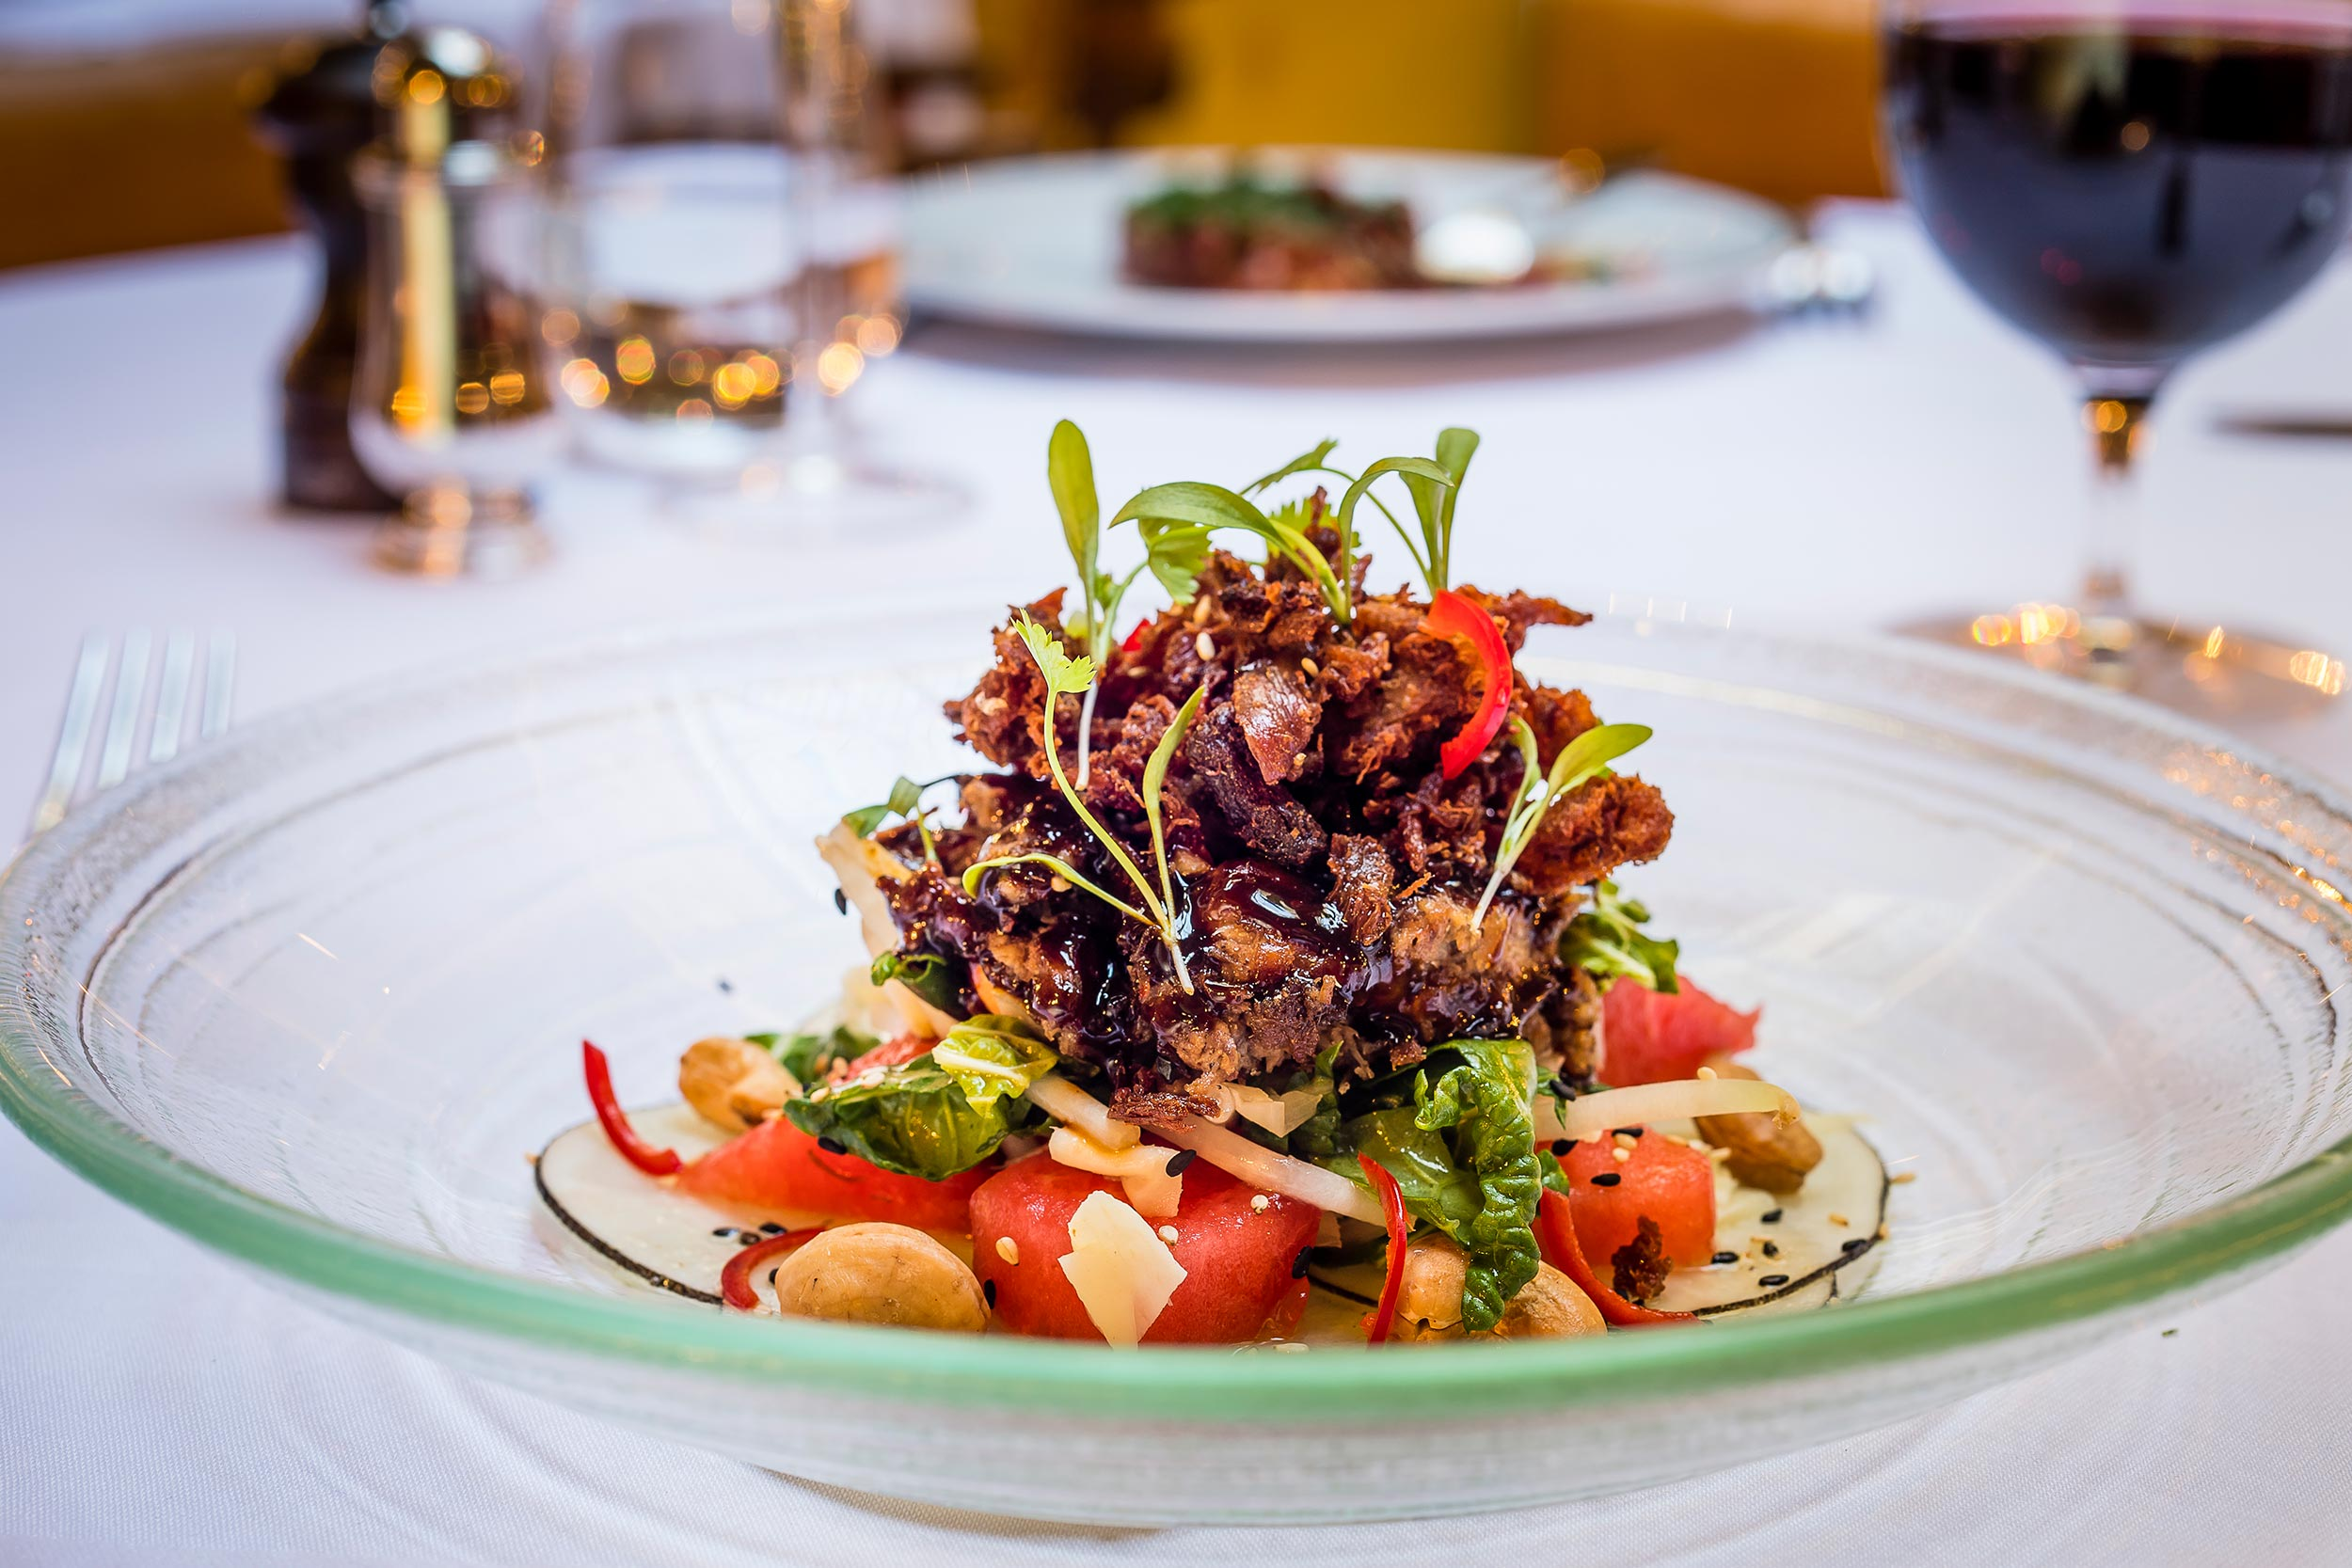 Crispy Duck Salad, Watermelon and Cashews at The Ivy City Garden - The Ivy City Garden